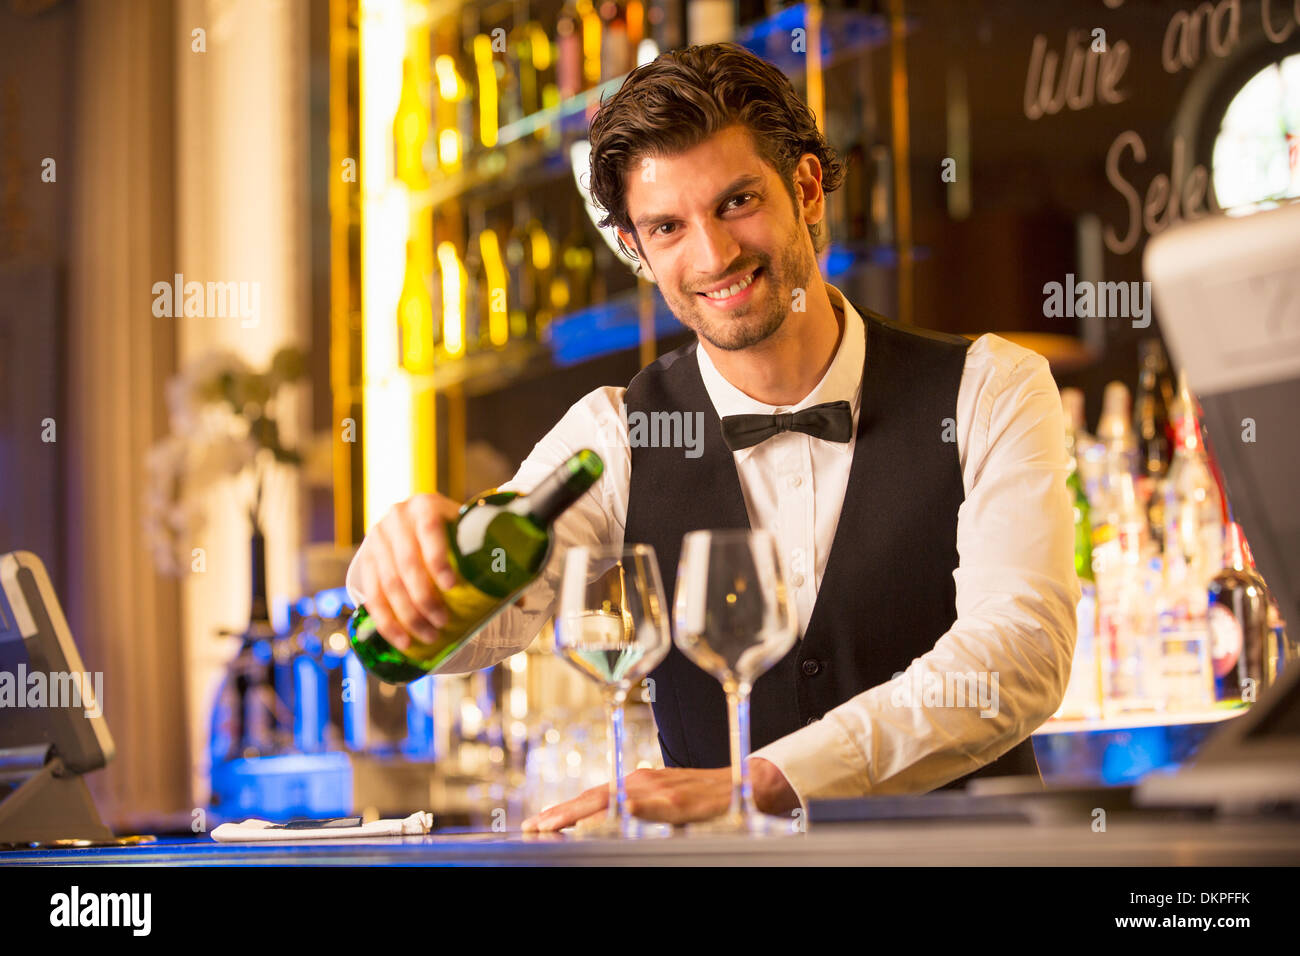 Portrait of well dressed bartender pouring wine in luxury bar - Stock Image